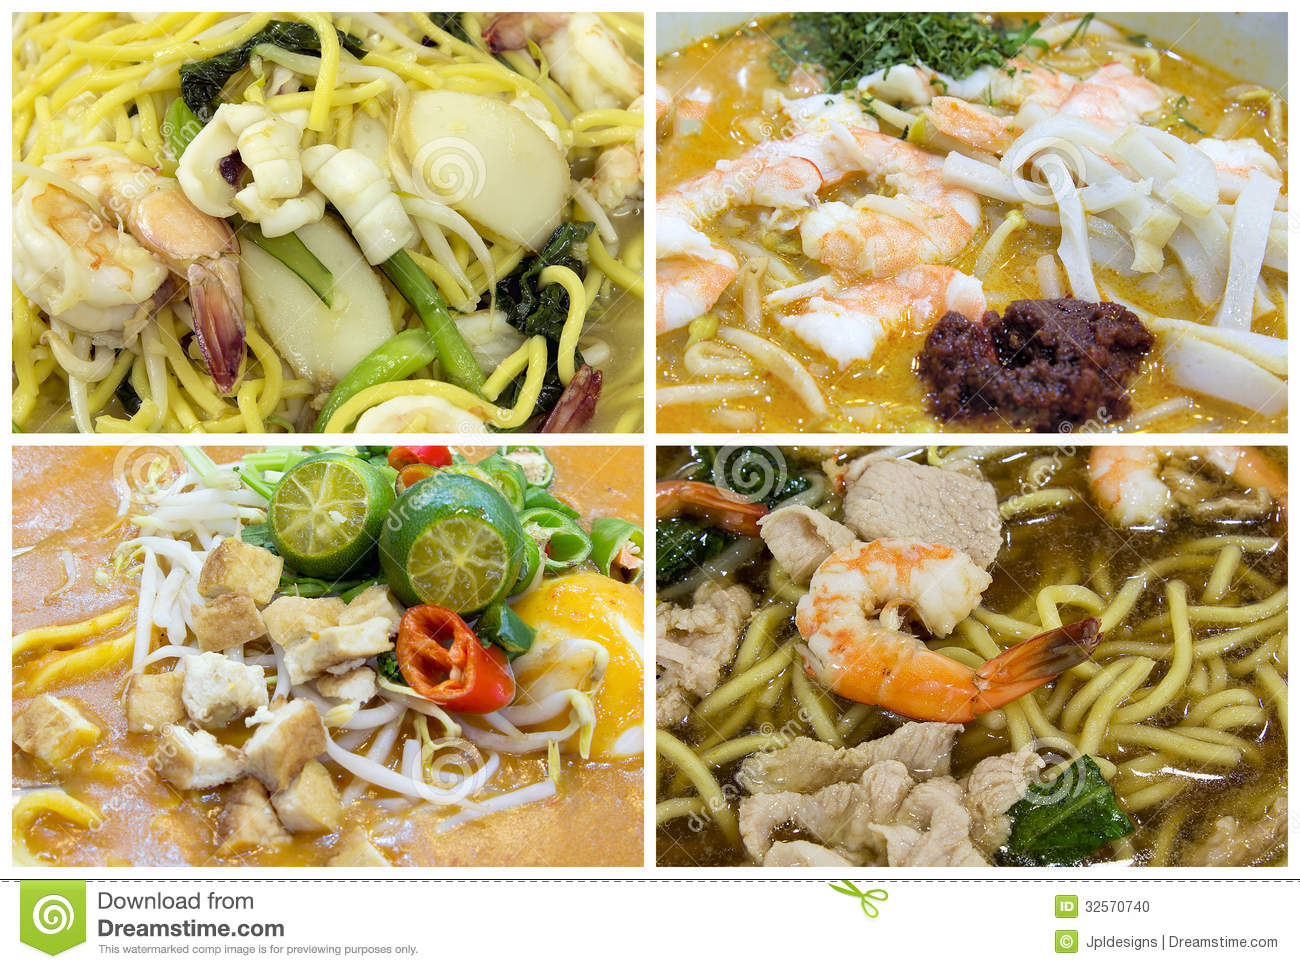 Southeast asian singapore noodles dishes collage stock for Aja east asia cuisine